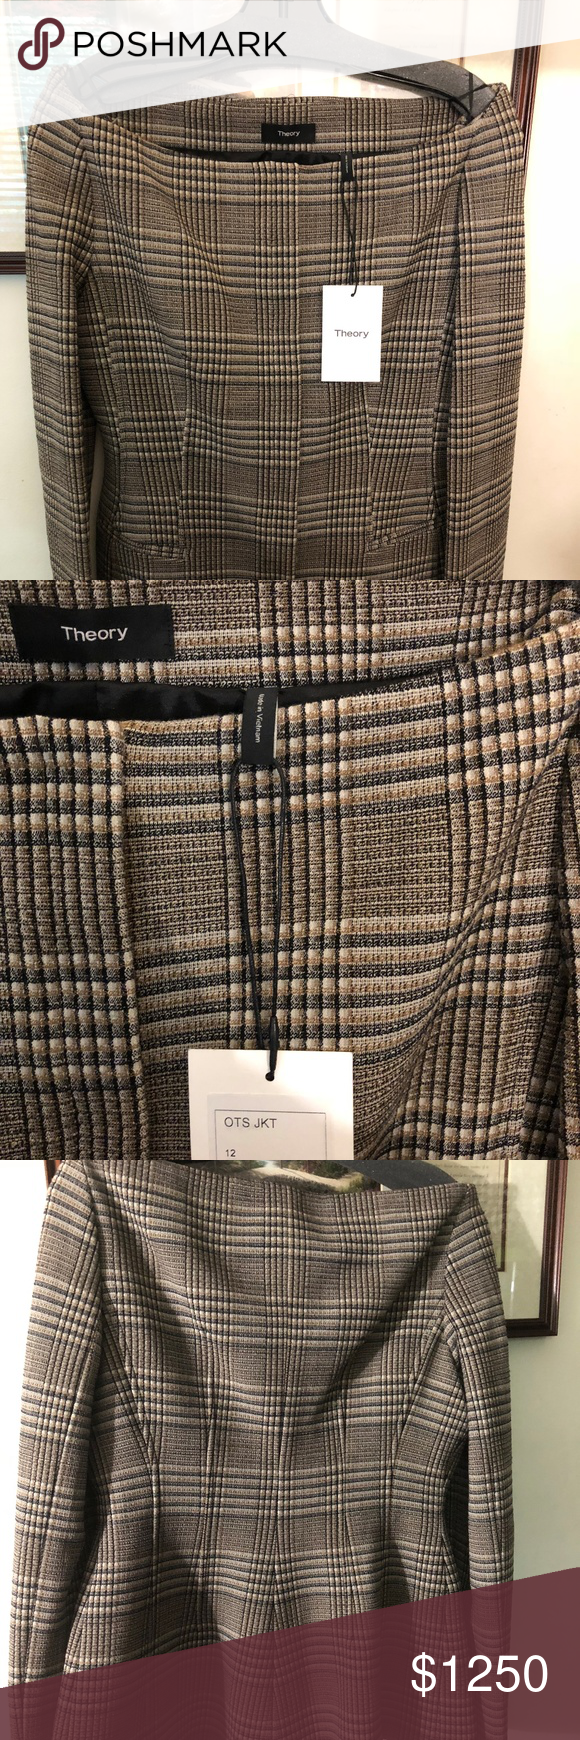 d30982ef09 Theory, off the shoulder, hadfield jacket, NWT Graham Multi plaid, stretch  wool blend, off the shoulder jacket. Exact jacket worn by Meghan Markle.